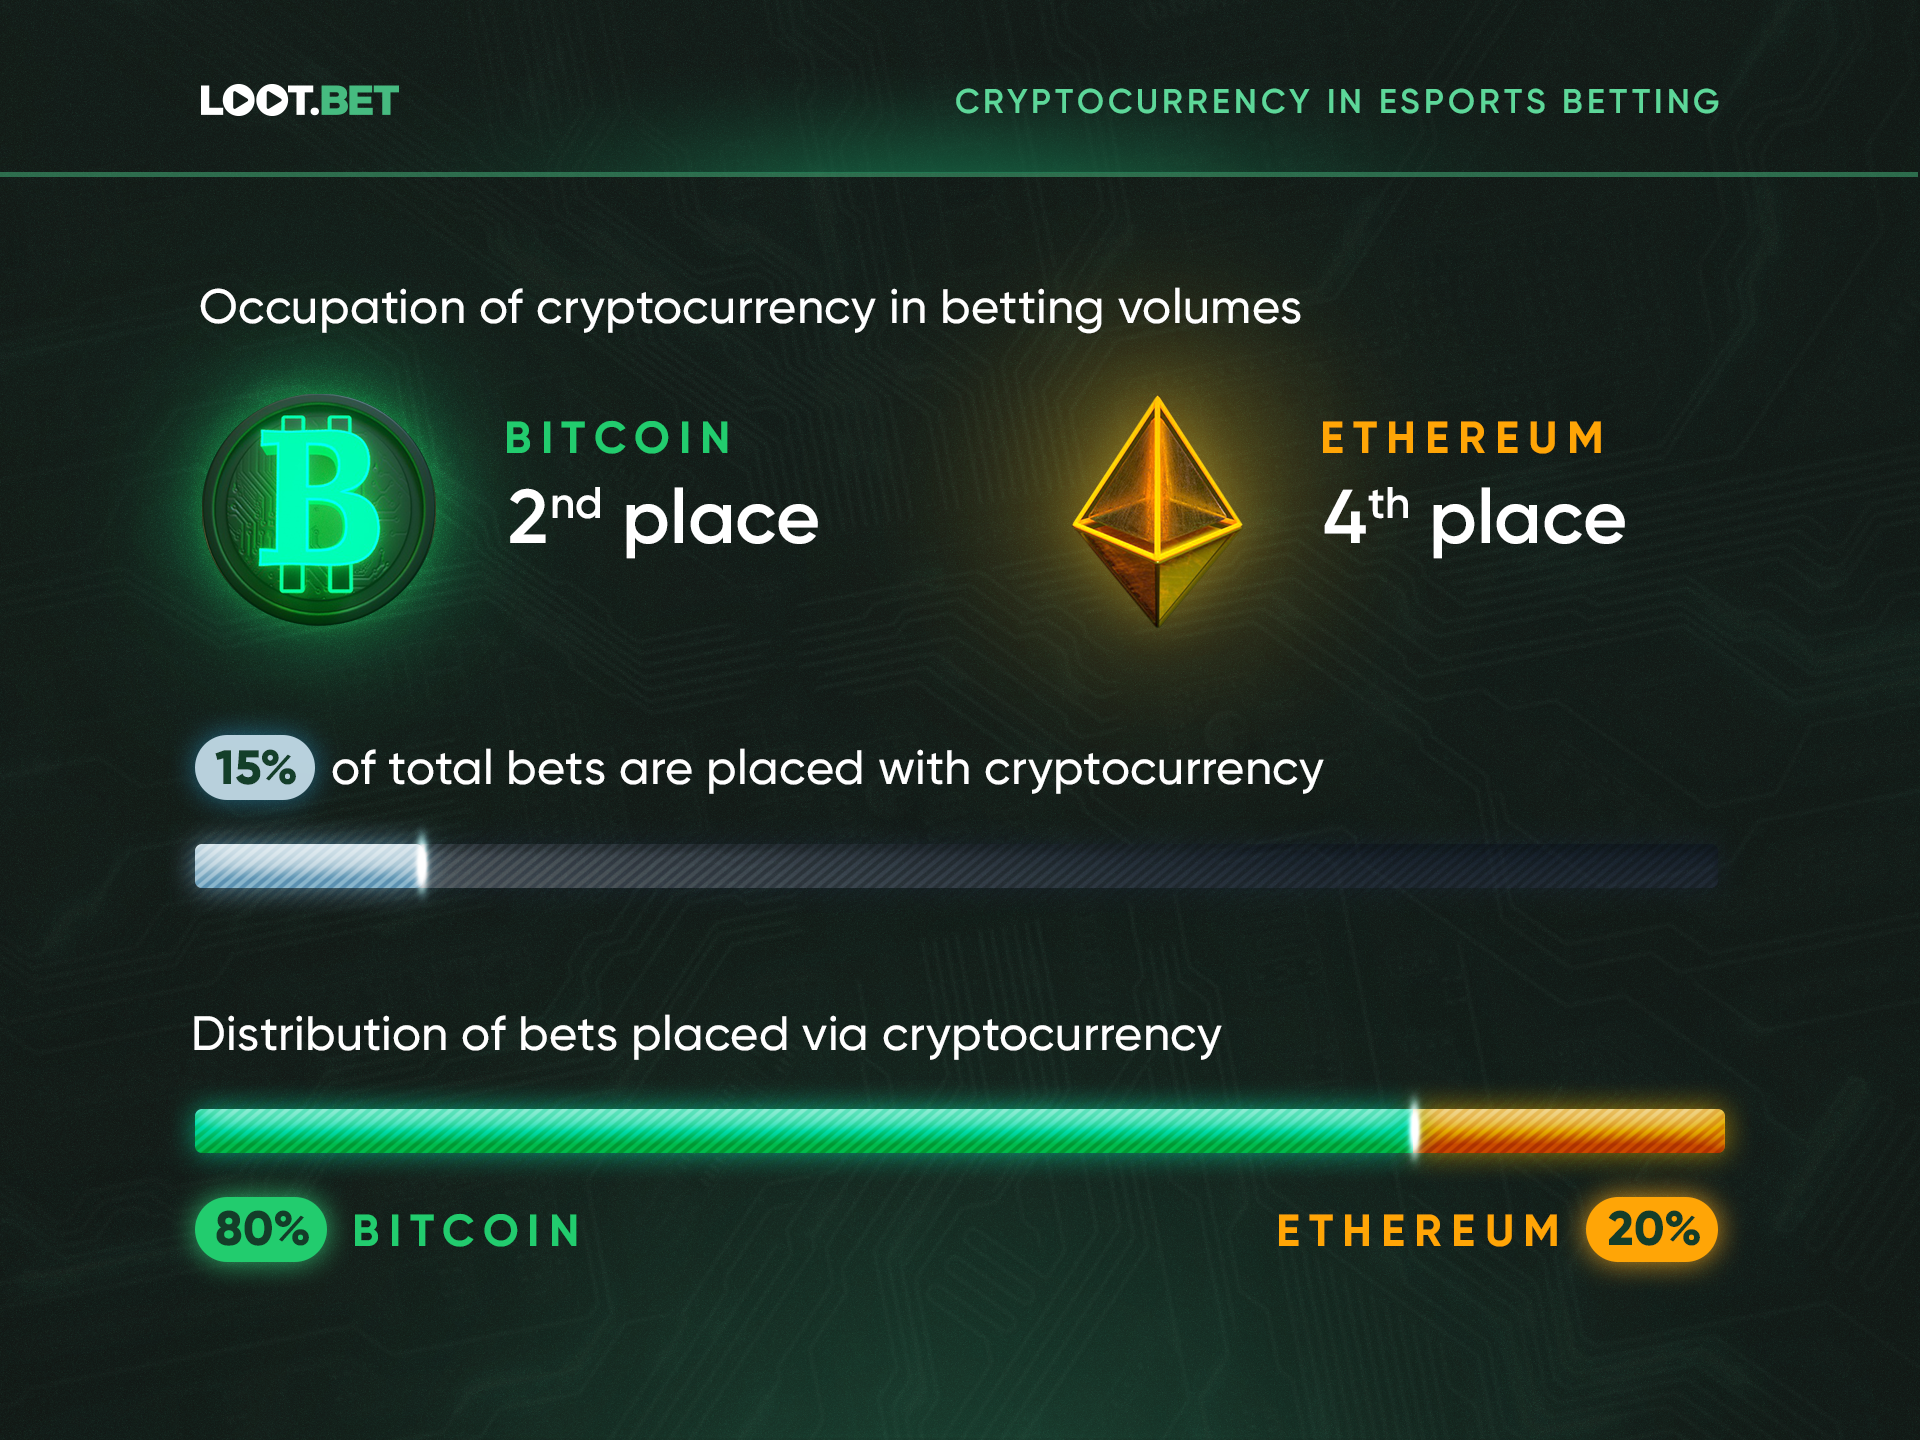 Crypto Esports Betting 1 - Research Reveals Cryptocurrency Owners to Be the Riskiest Esports Bettors